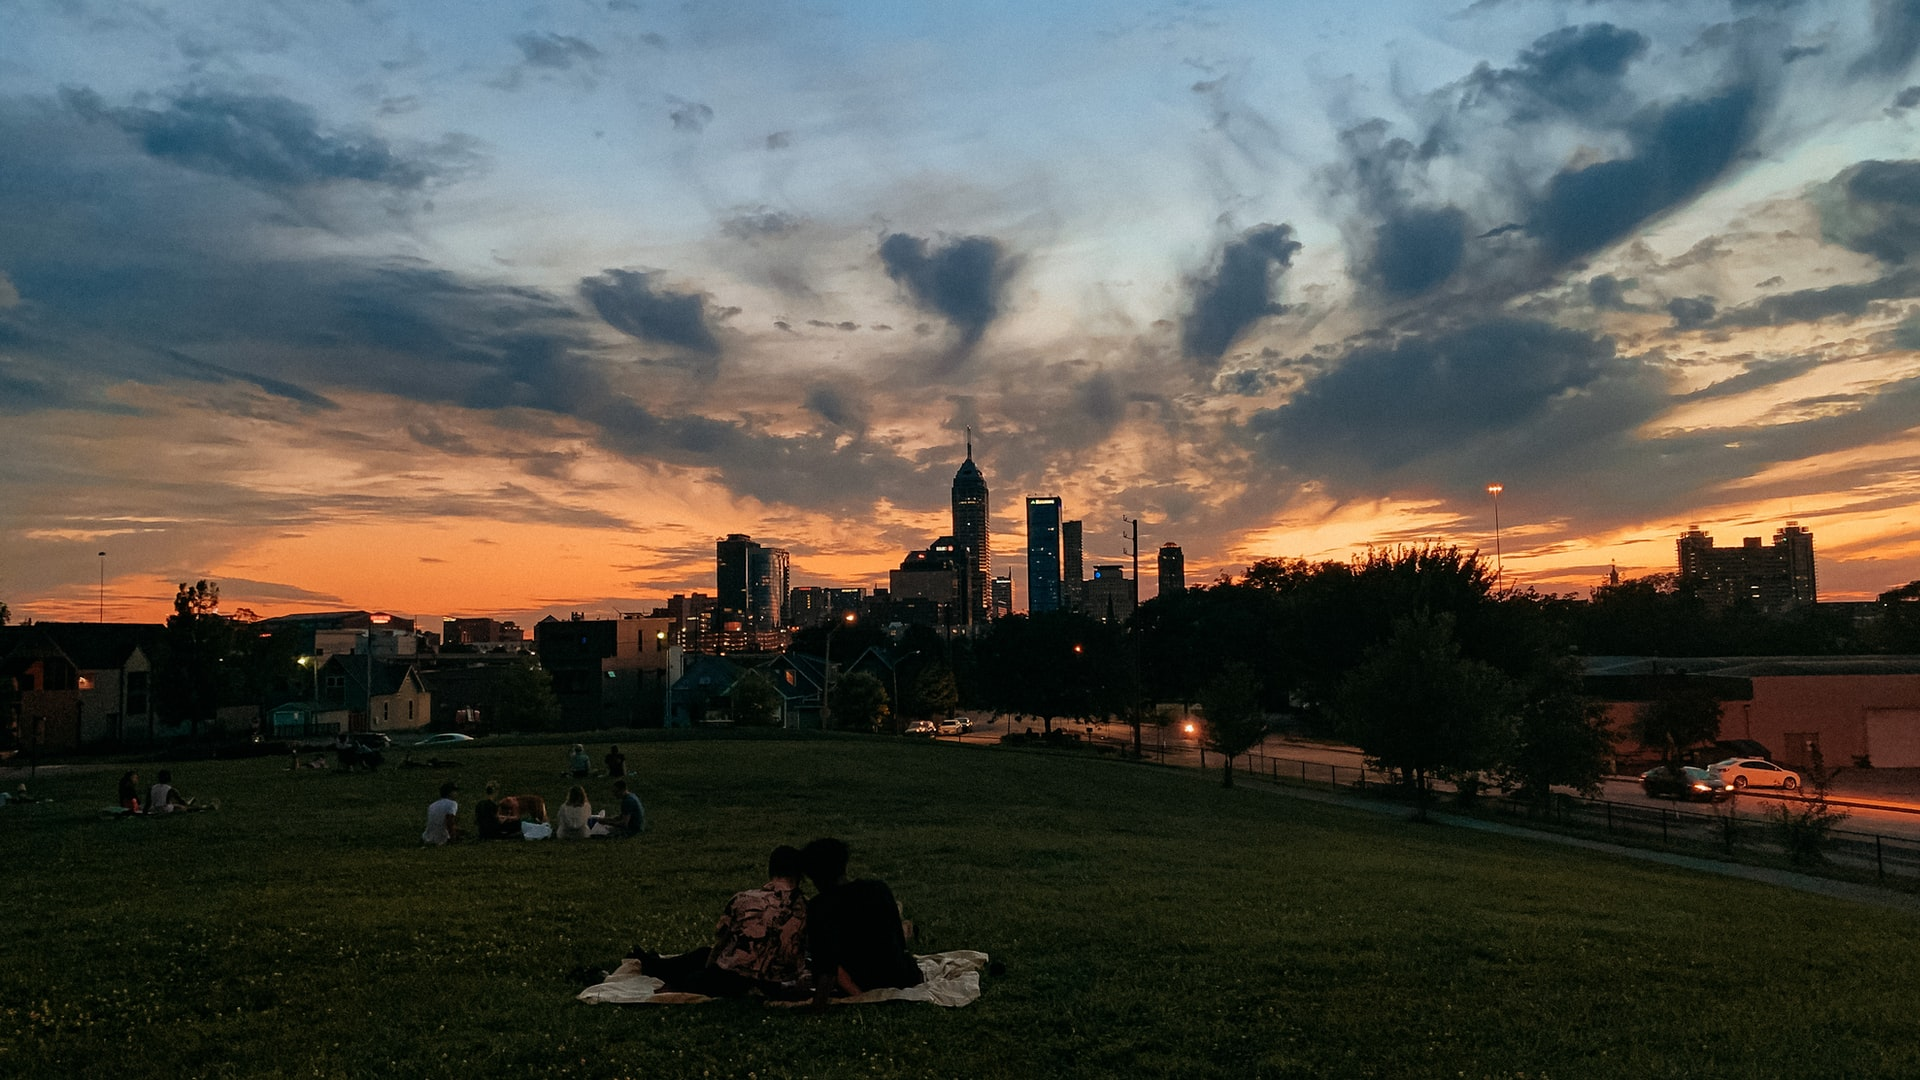 People sitting in a park looking at a skyline of Indianapolis at sunset.